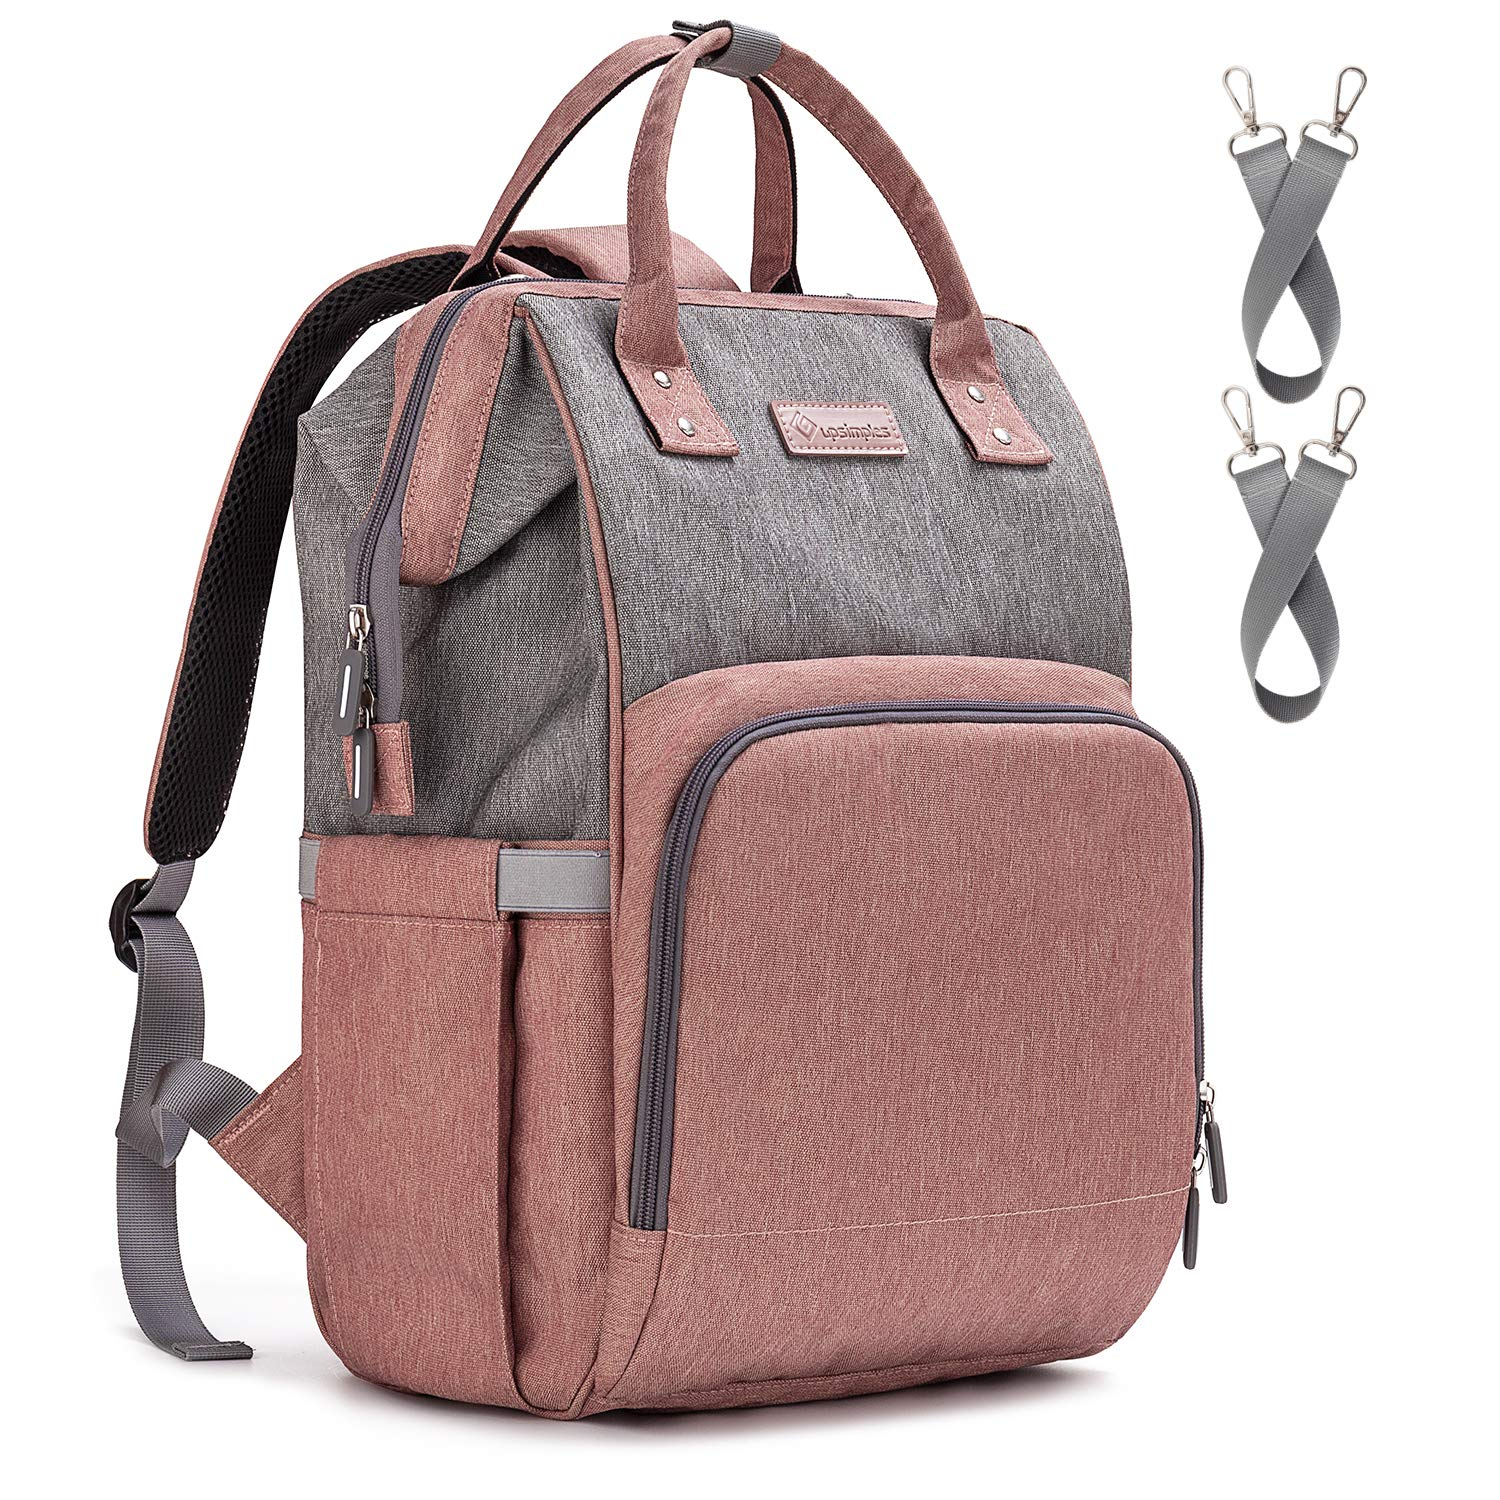 Backpack Upsimples Maternity Charging Resistant